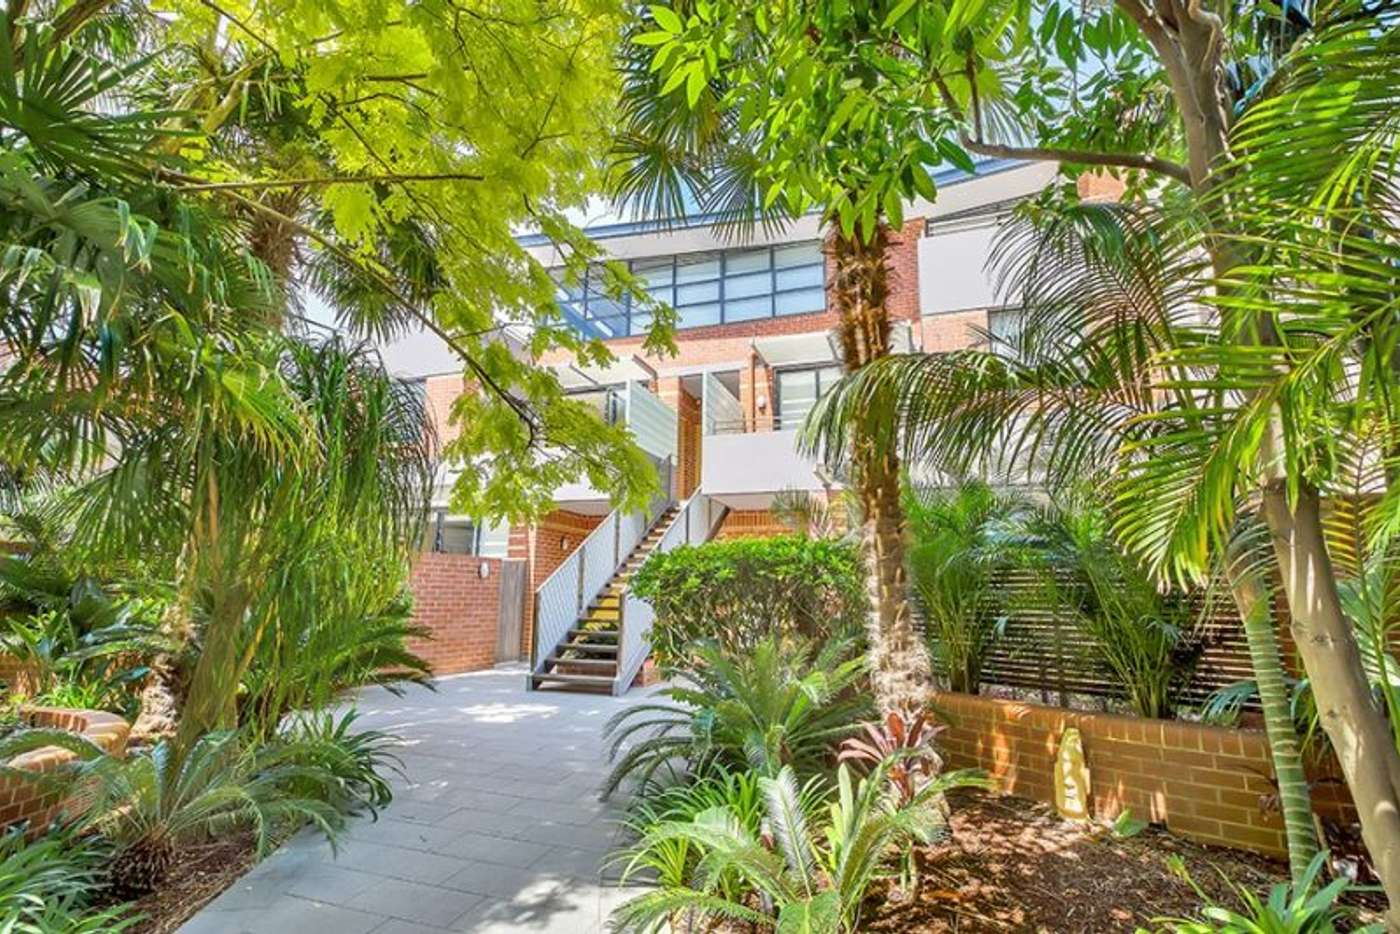 Main view of Homely apartment listing, 9/214 Clovelly Road, Clovelly NSW 2031